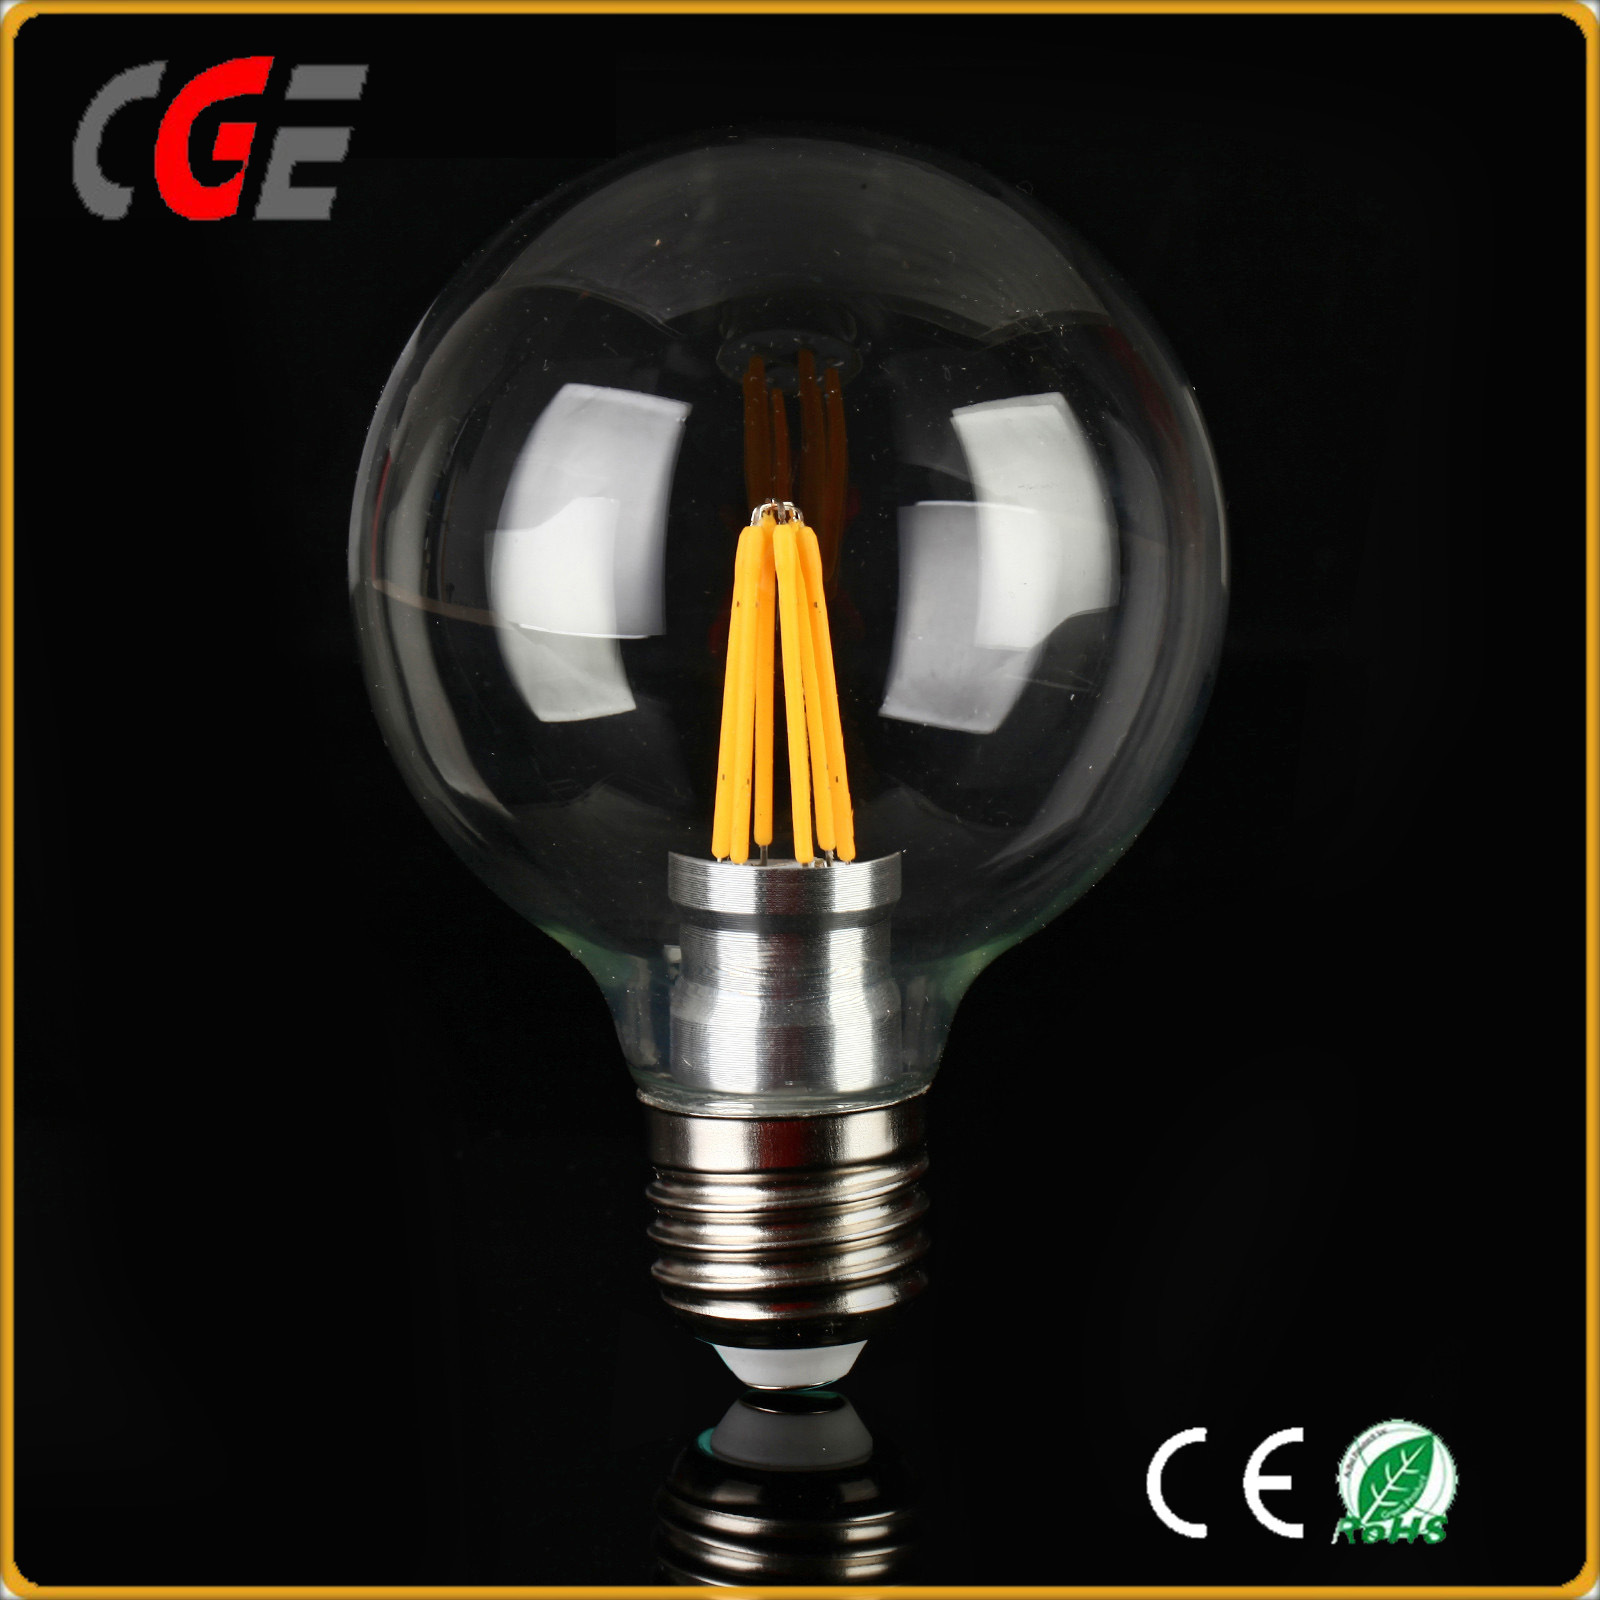 G80 Edison 4W/6W E27 E26 B22 Filament LED Bulb Light